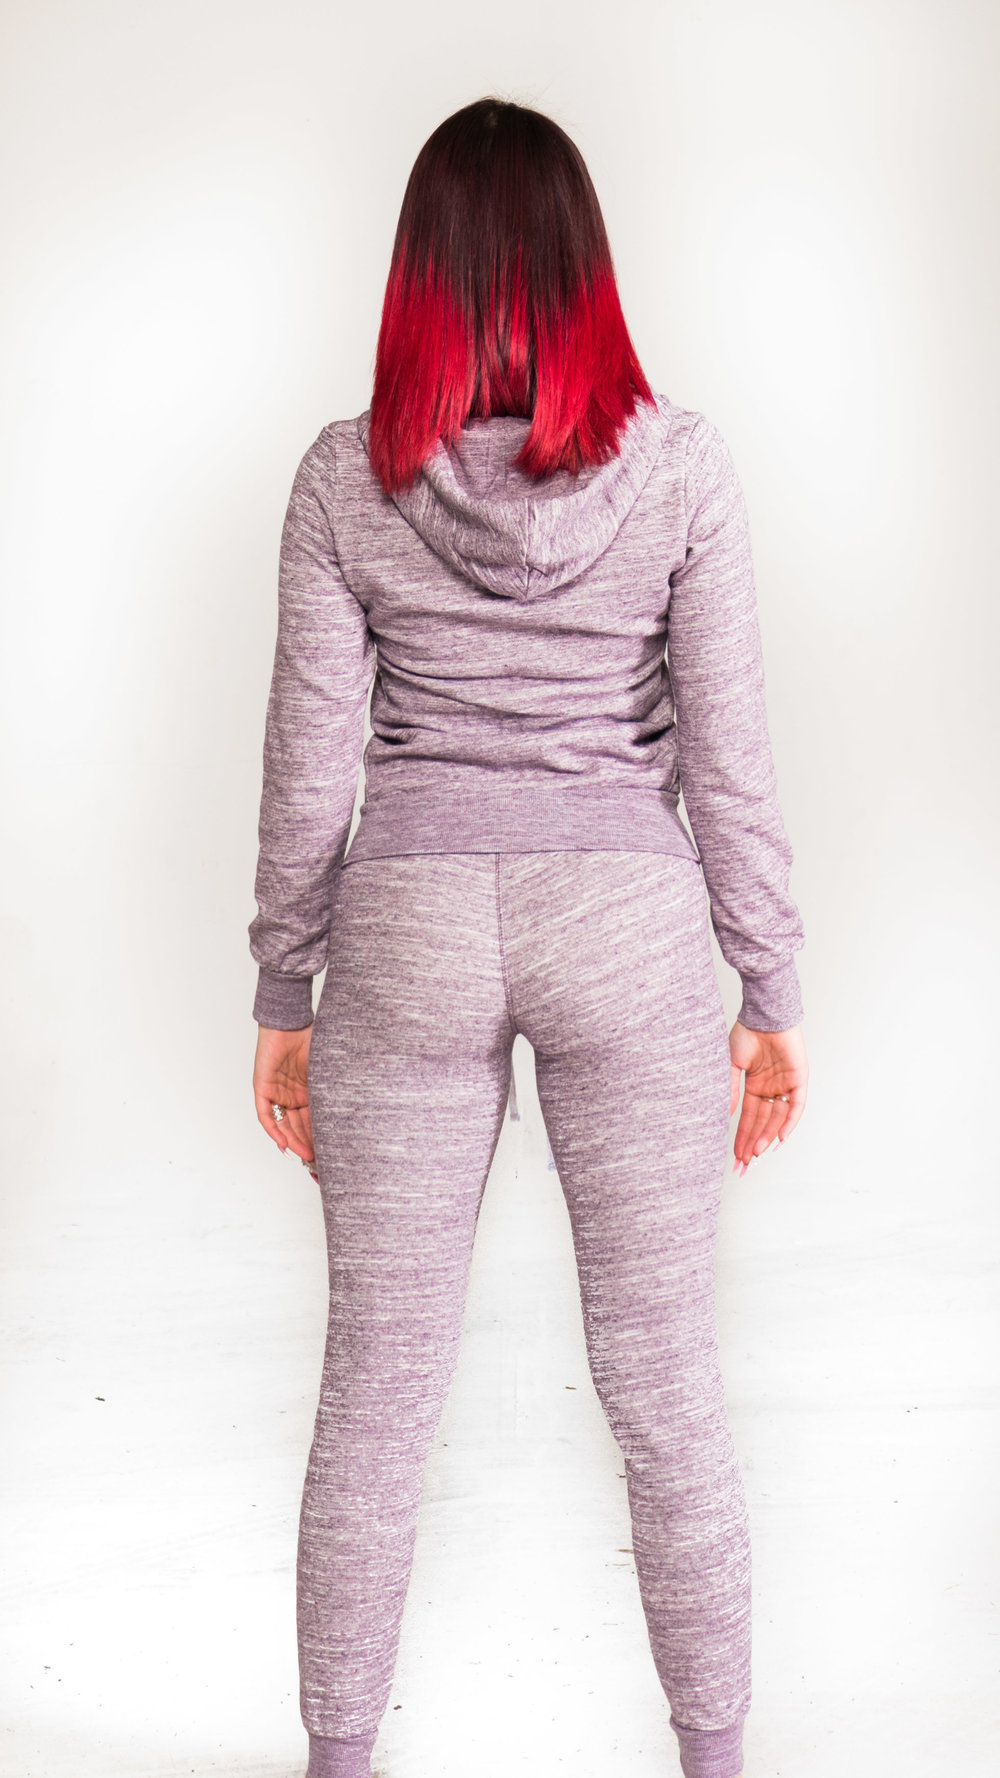 isis clothing - product shots-1580518.jpg